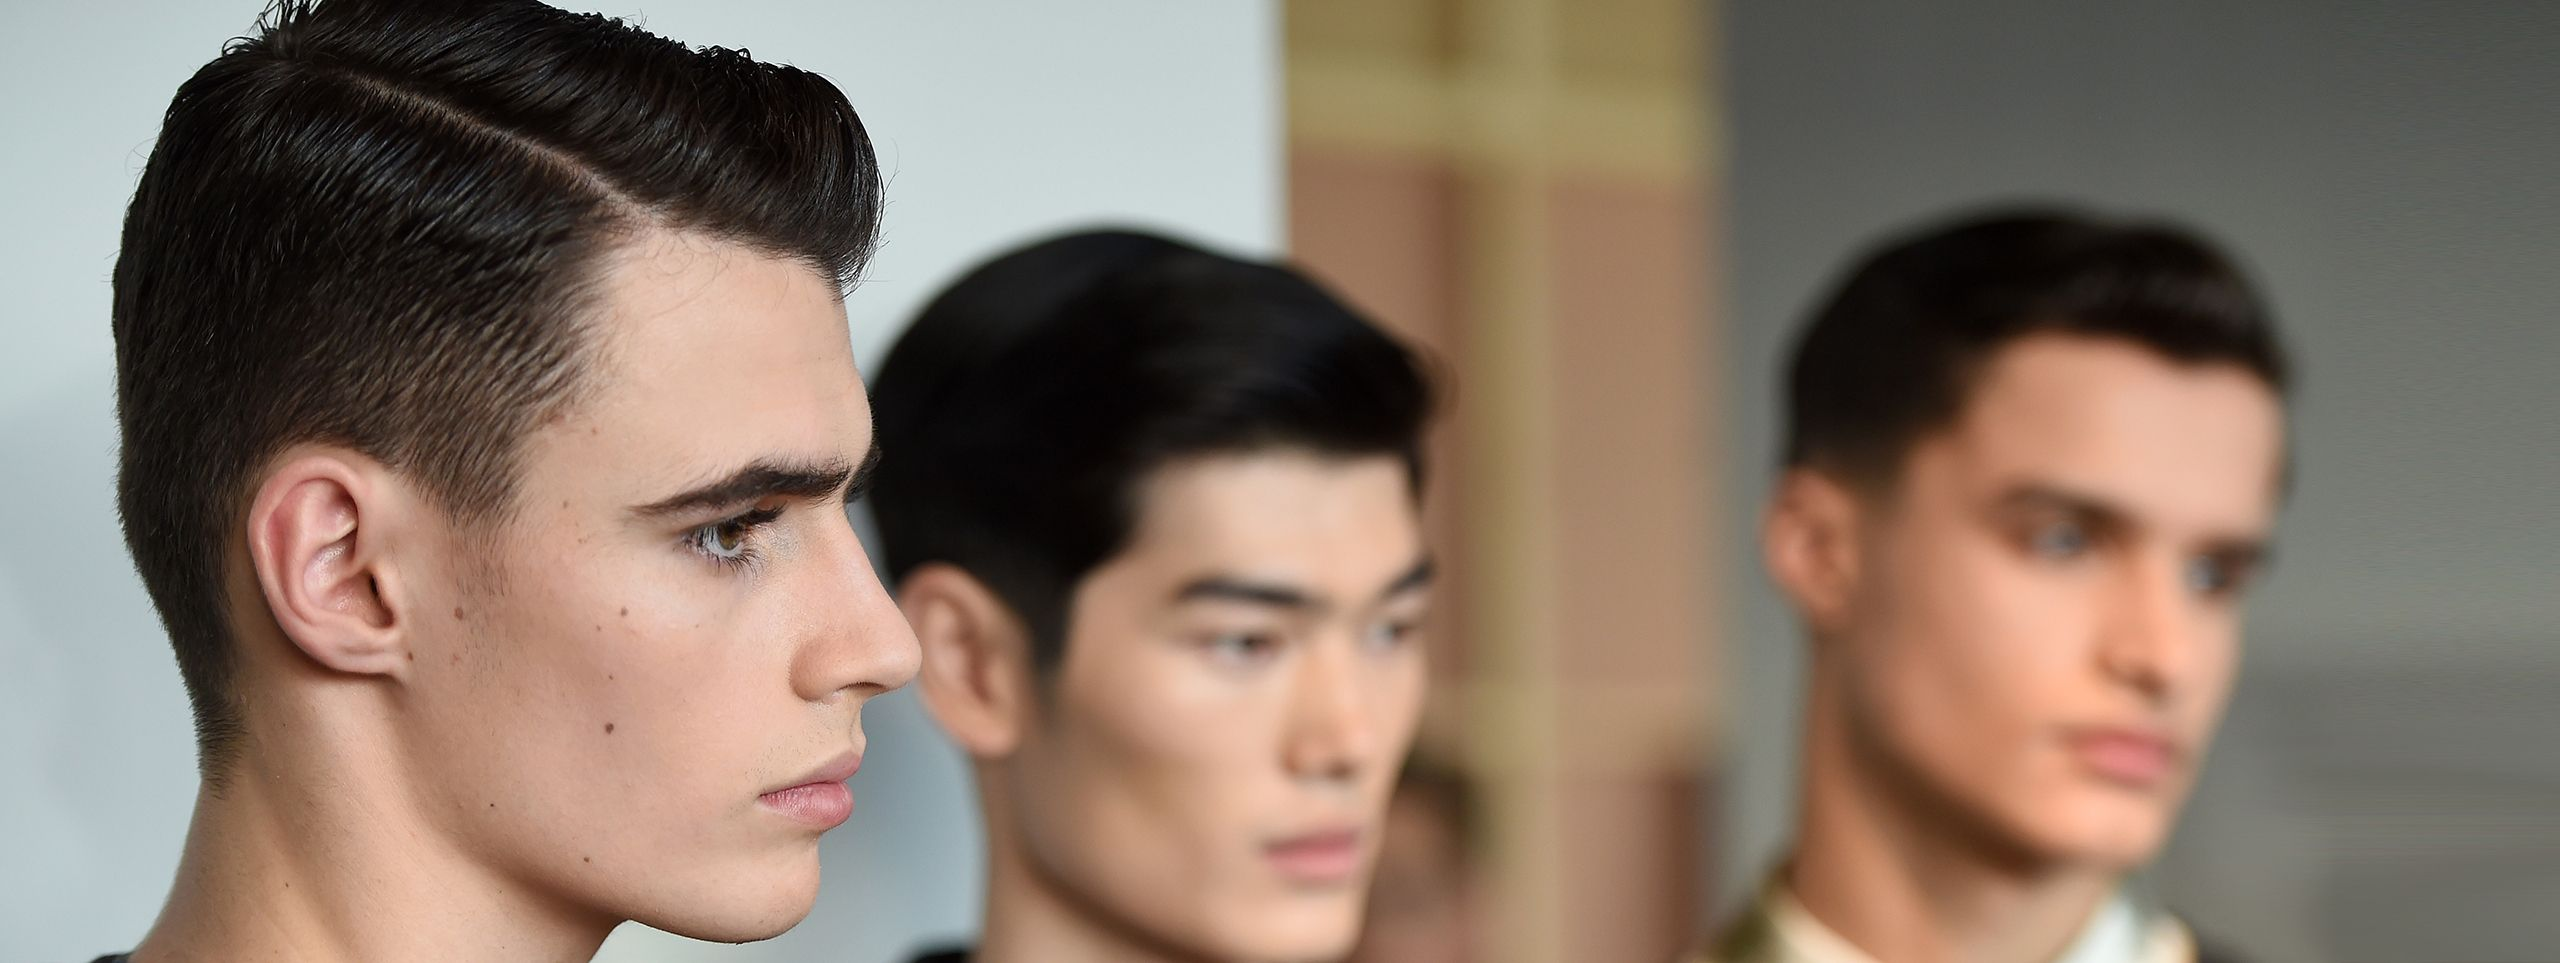 Three male models with faded hairstyles